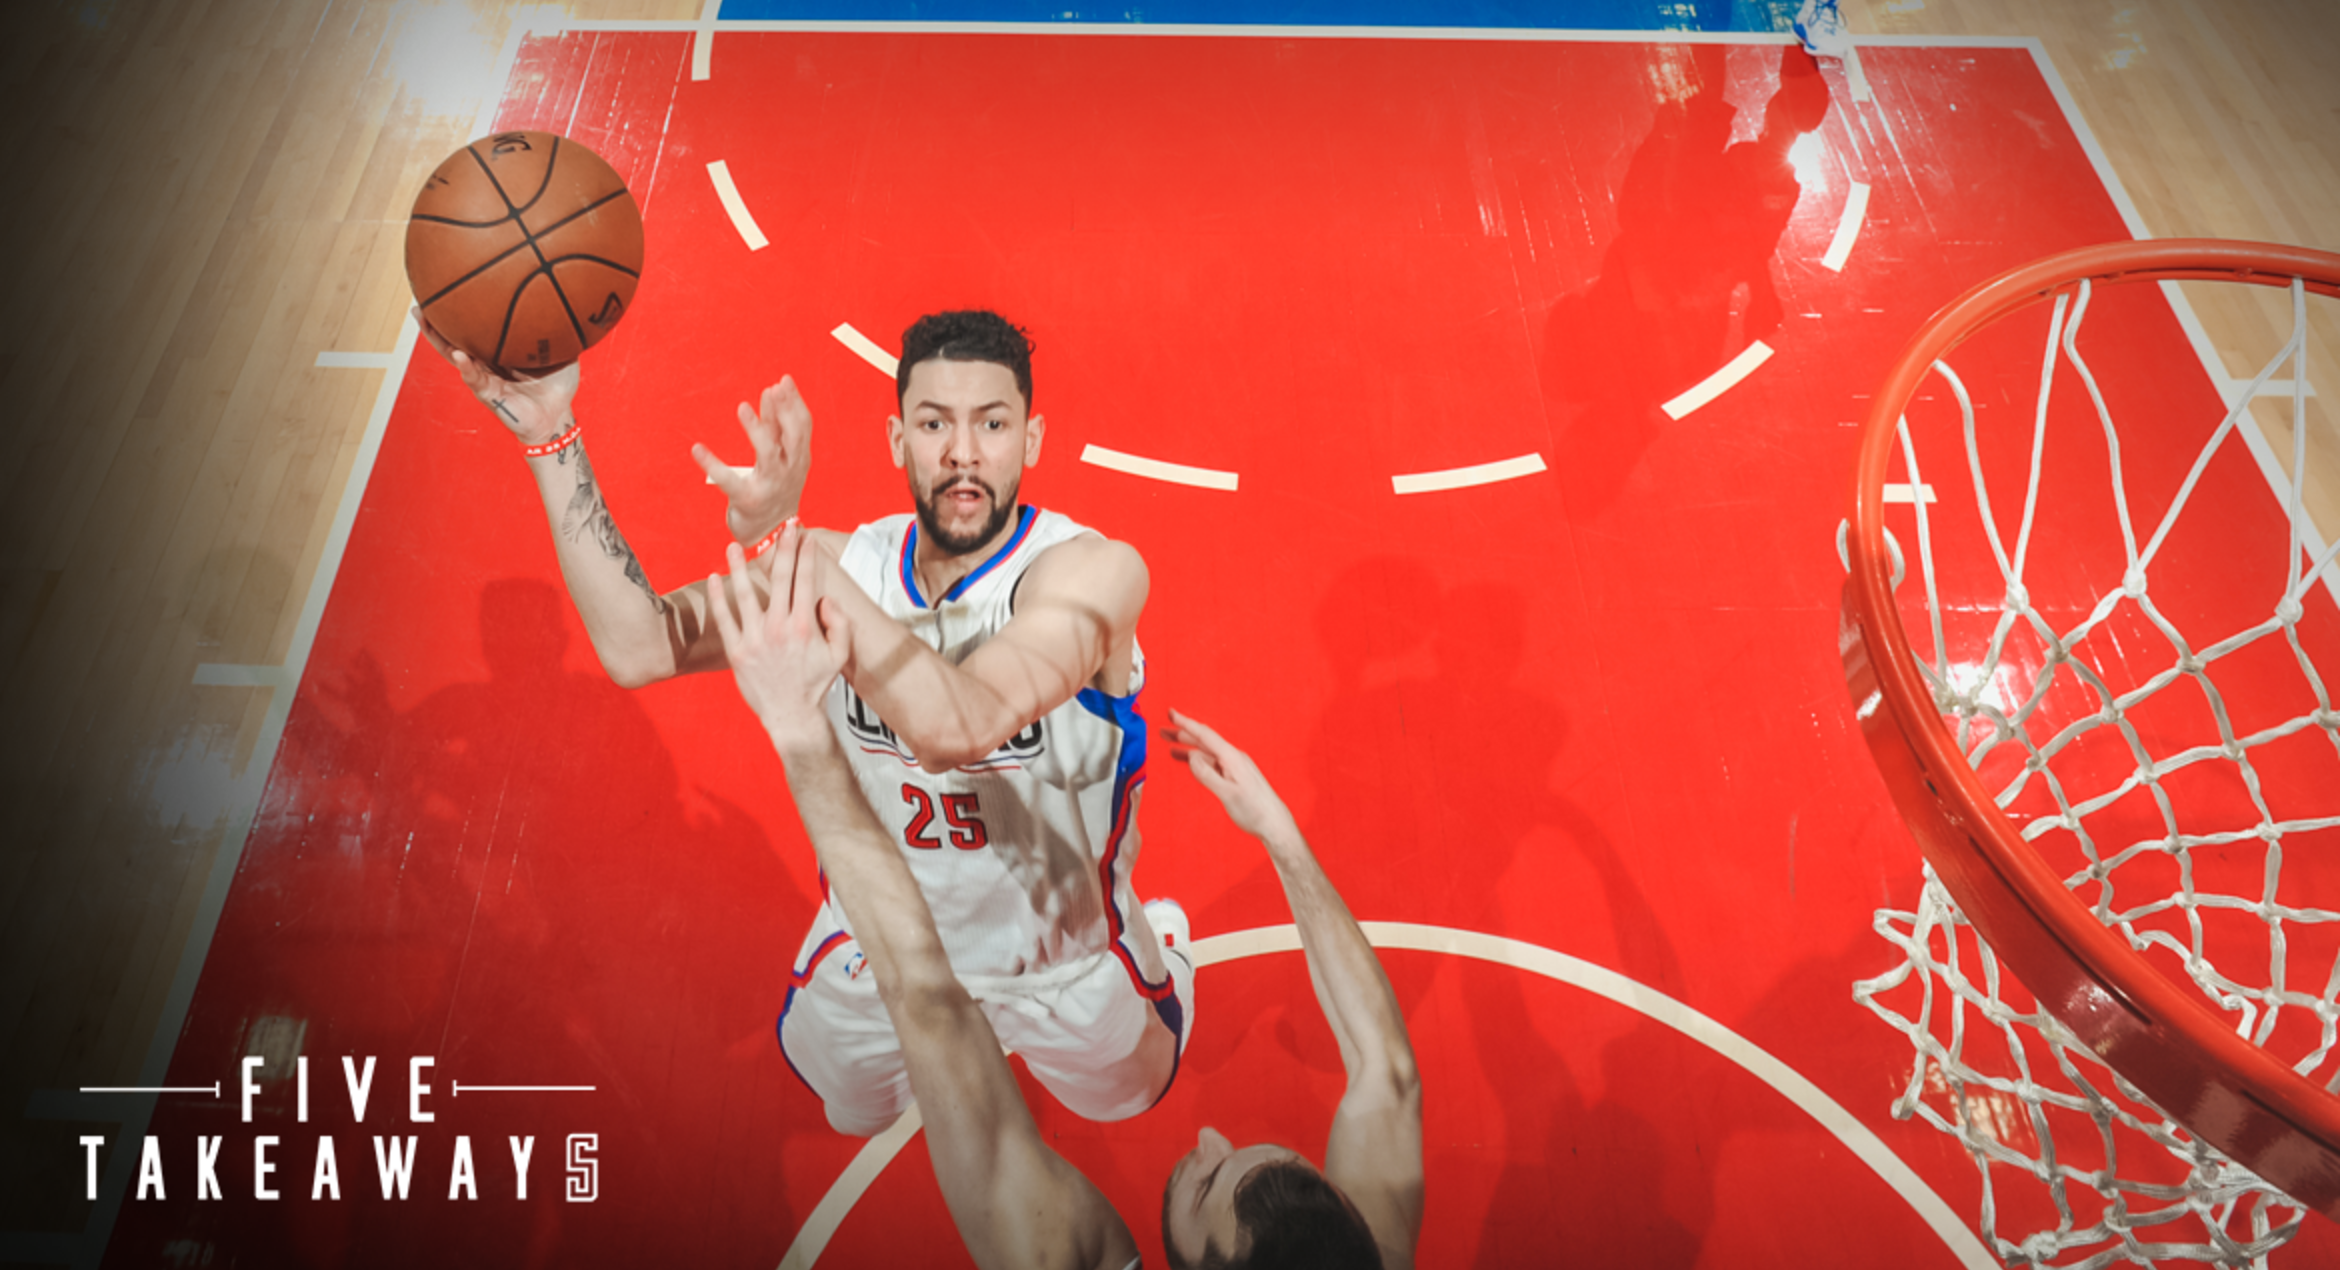 Five Takeaways: Clippers Surge In Fourth Quarter, Beat 76ers